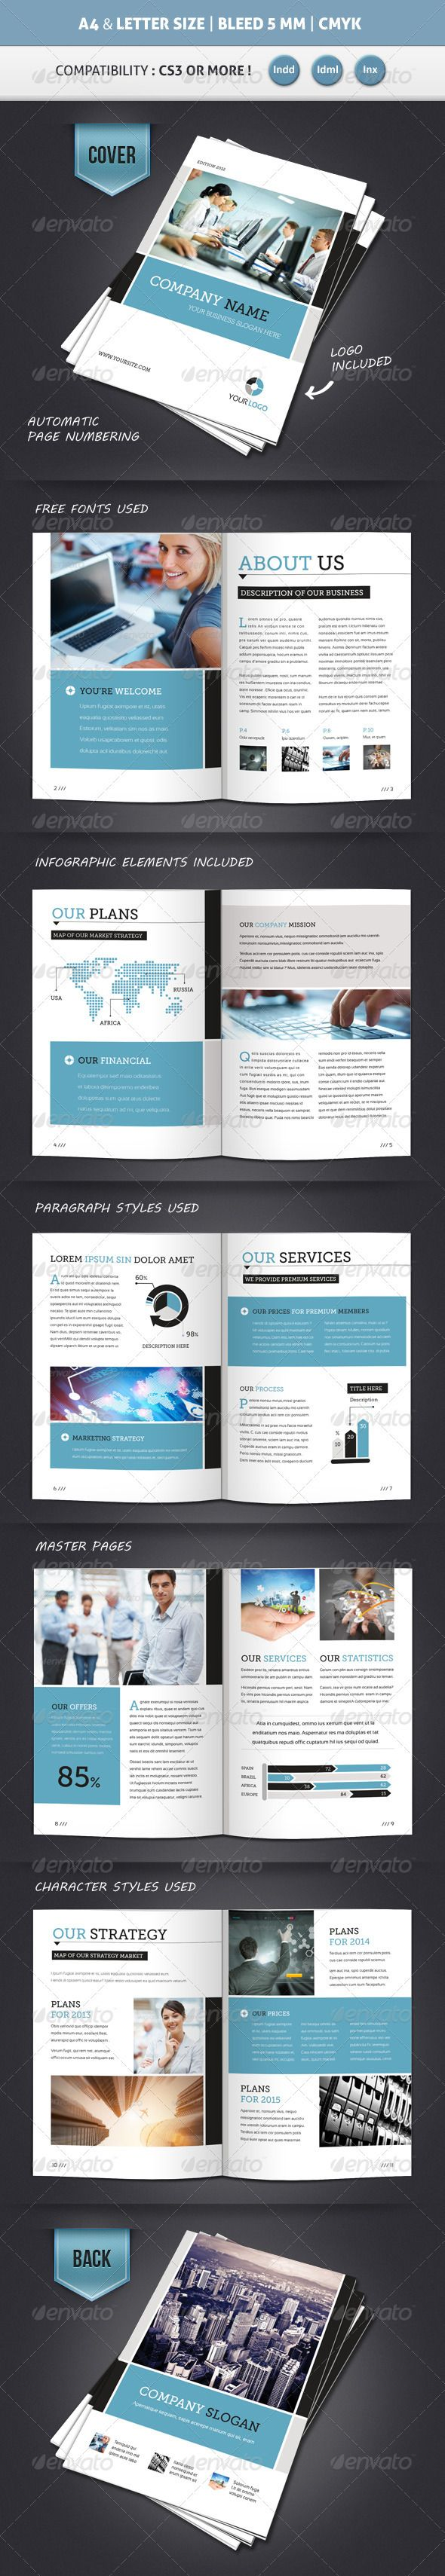 a4 brochure template - 1000 images about business proposal design on pinterest